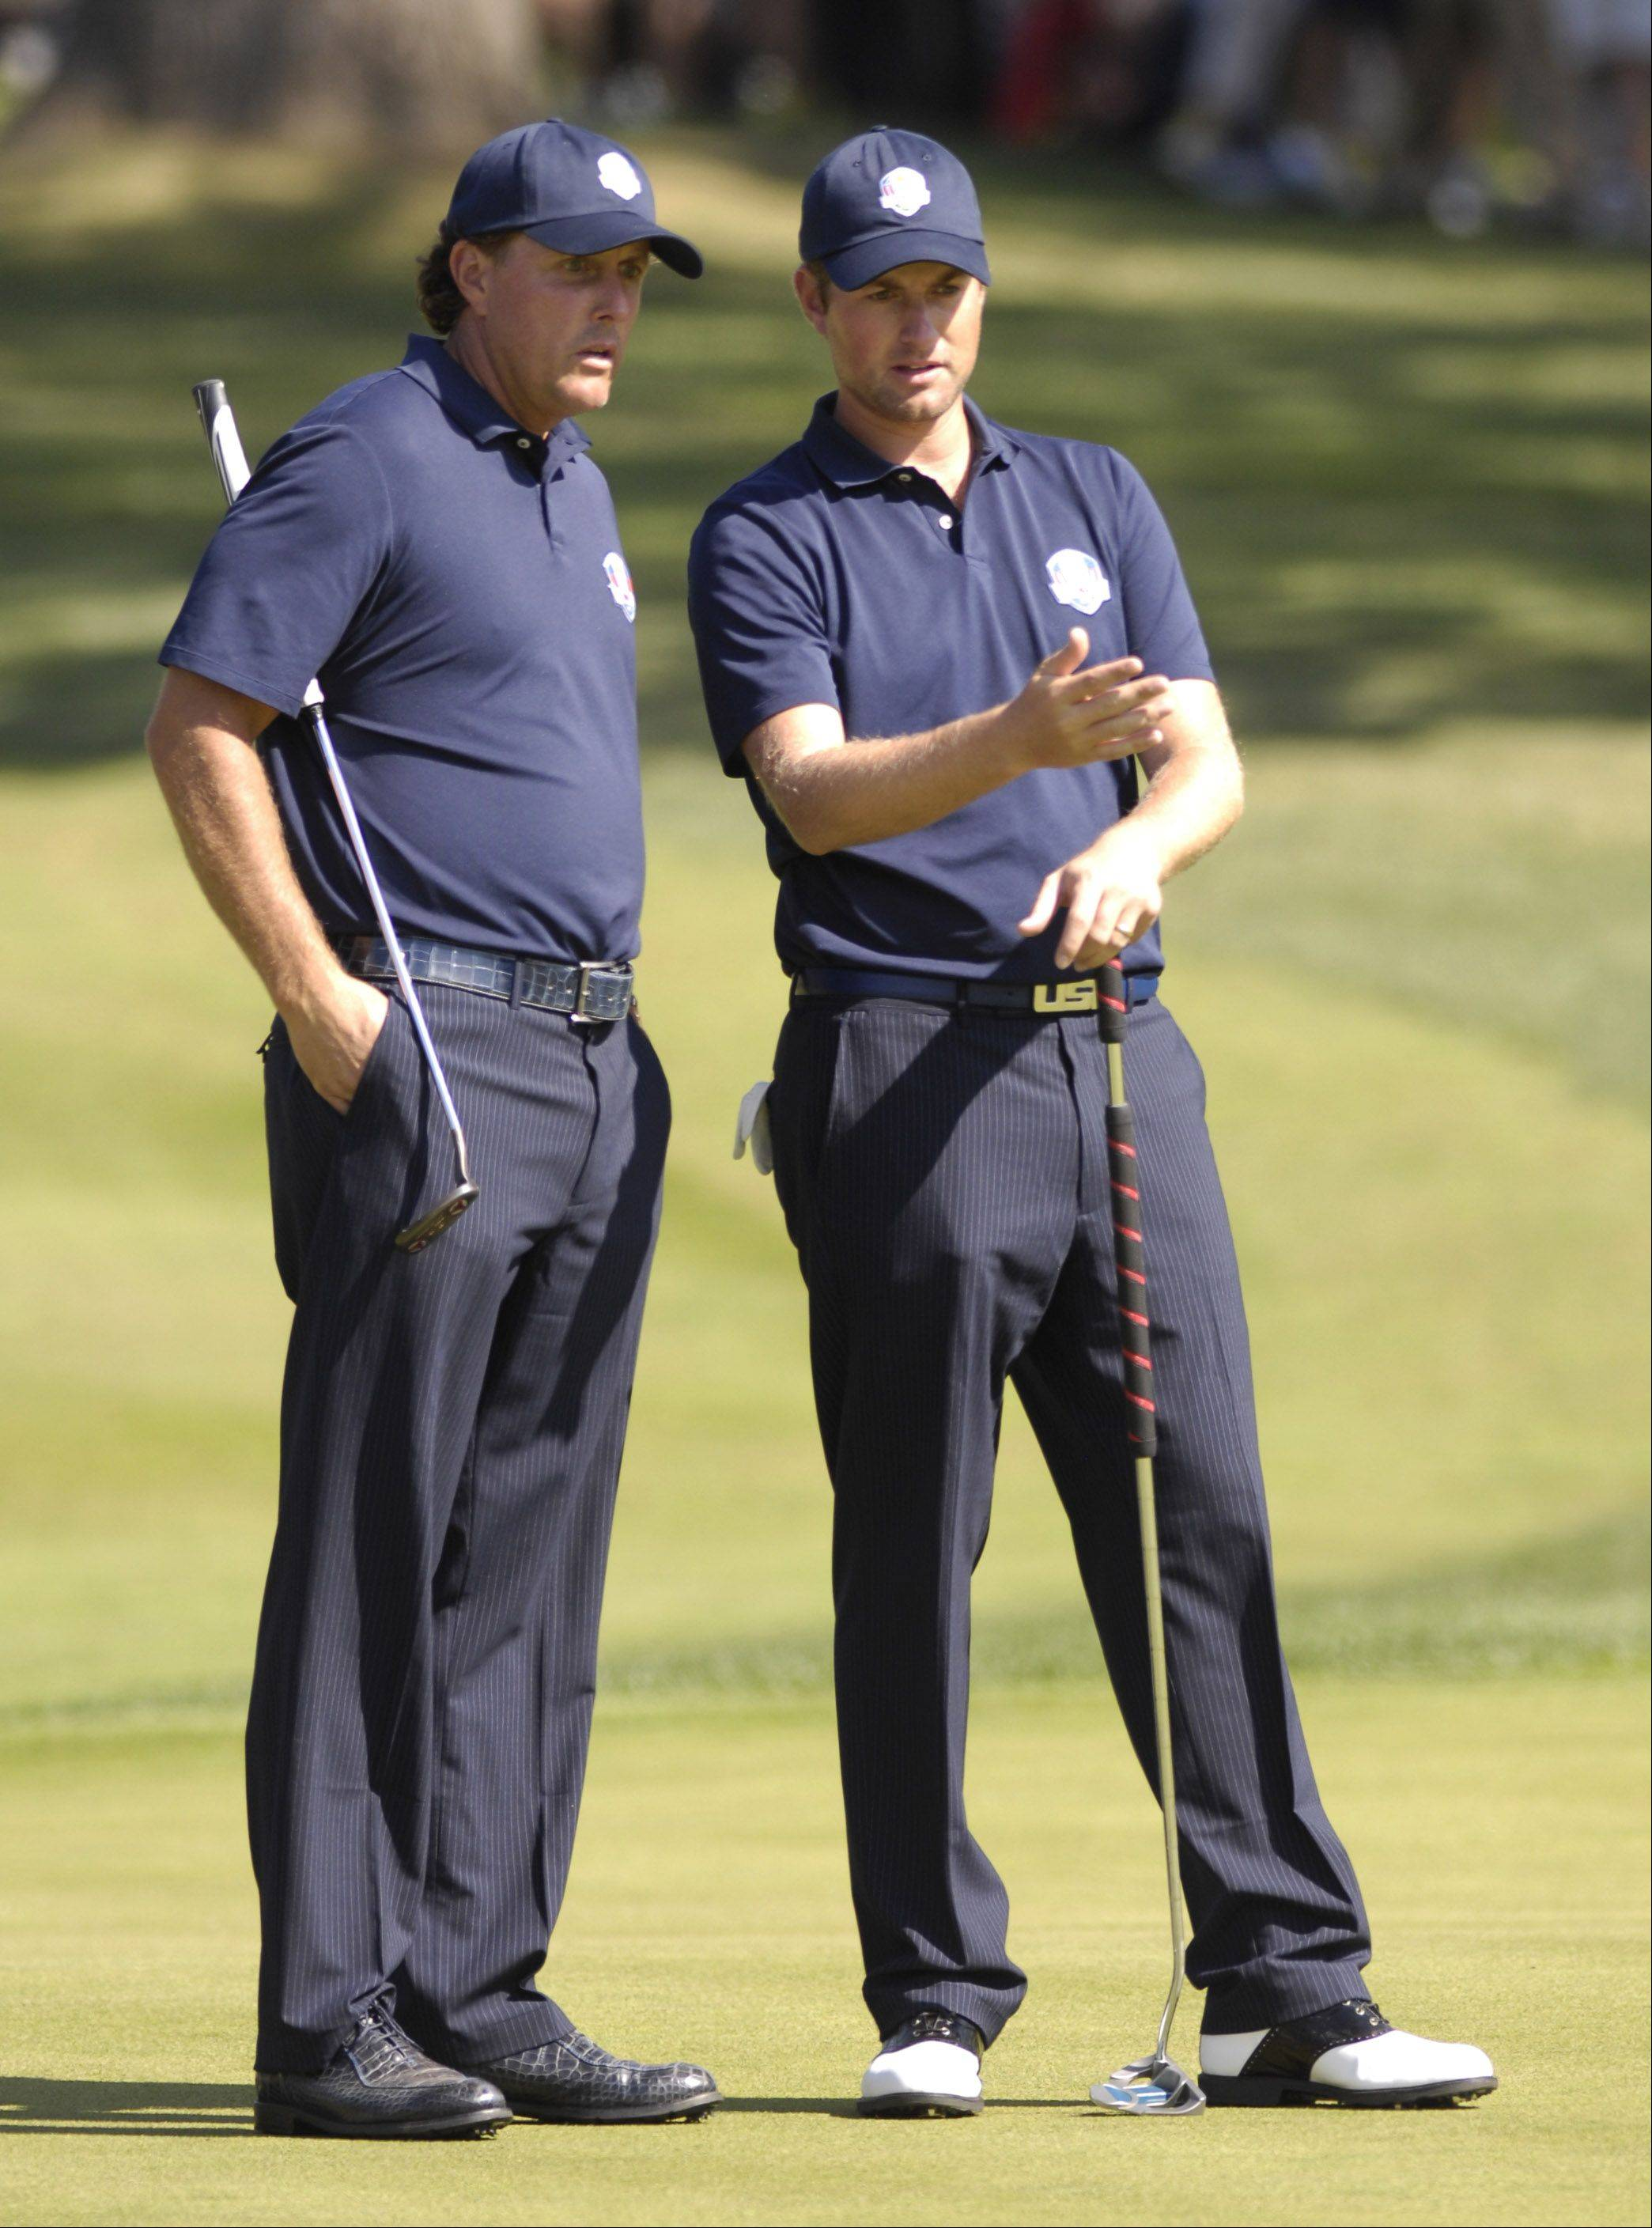 Team USA players Phil Mickelson, left, and Webb Simpson survey the #3 Course at Medinah .